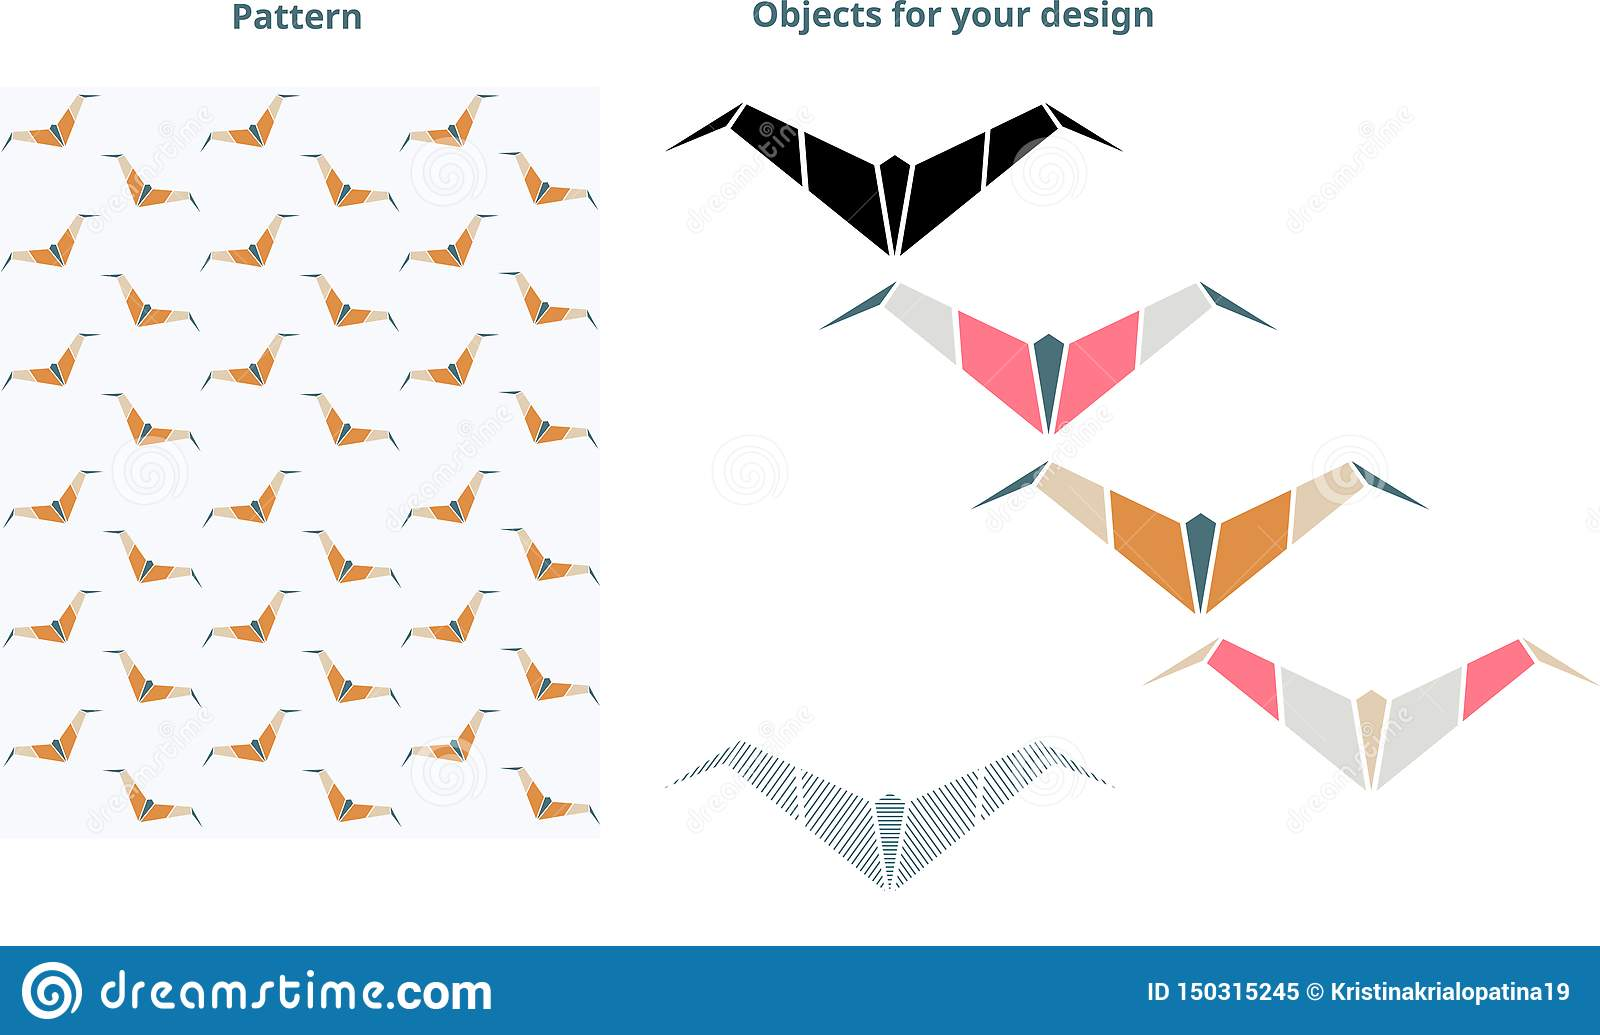 Bat pattern. Perfect for your design.